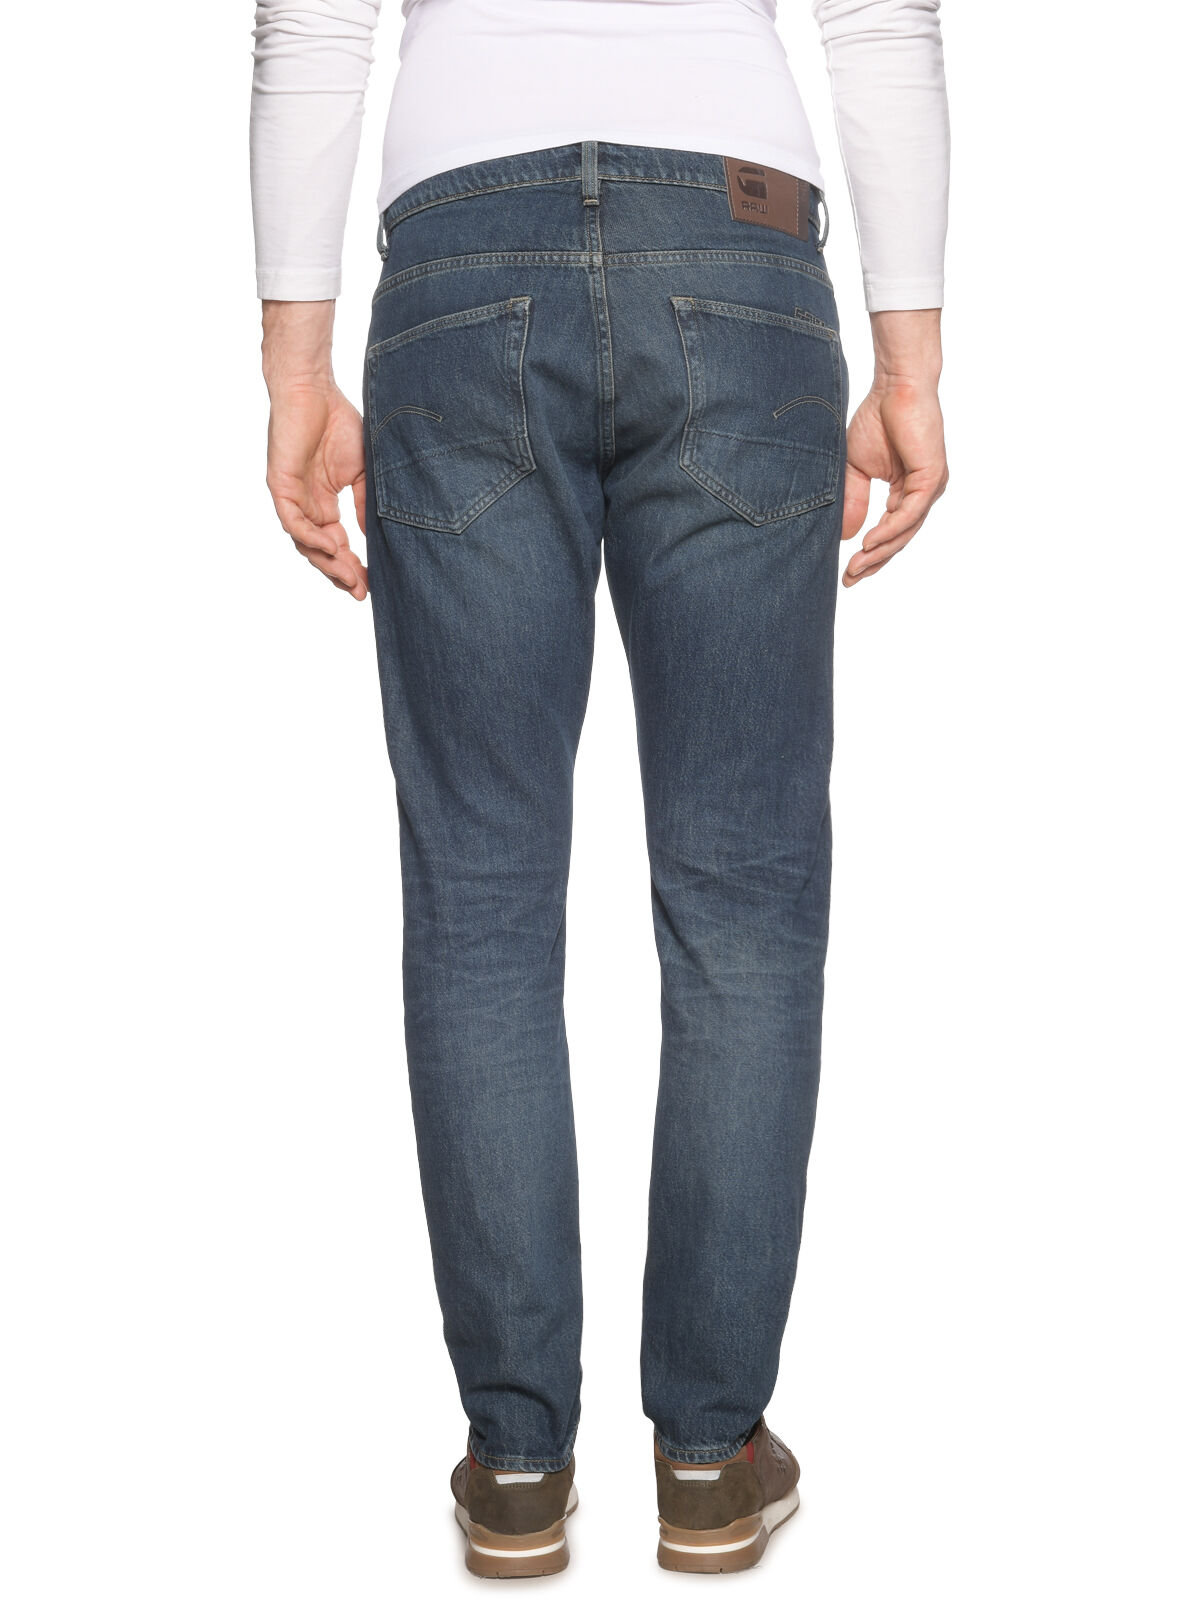 Jean 3301 Tapered